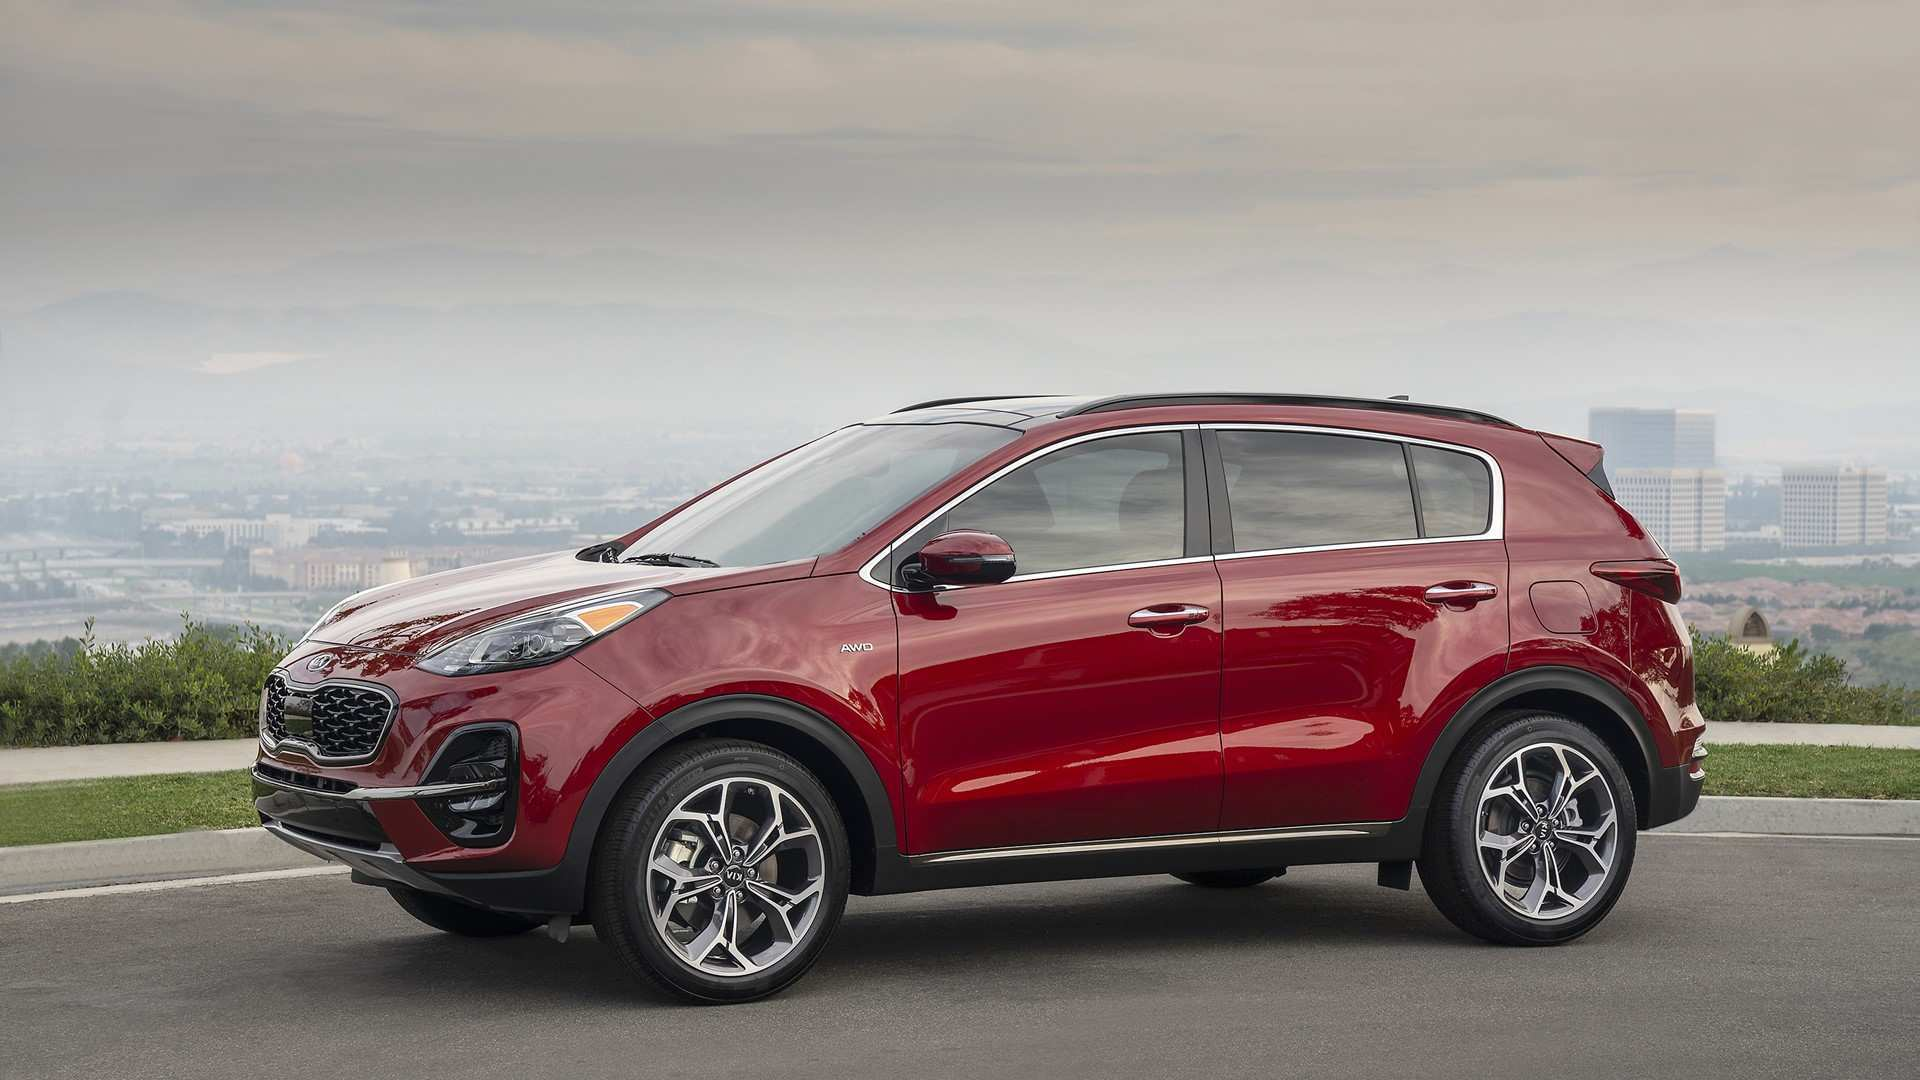 99 Best When Does The 2020 Kia Sportage Come Out Speed Test